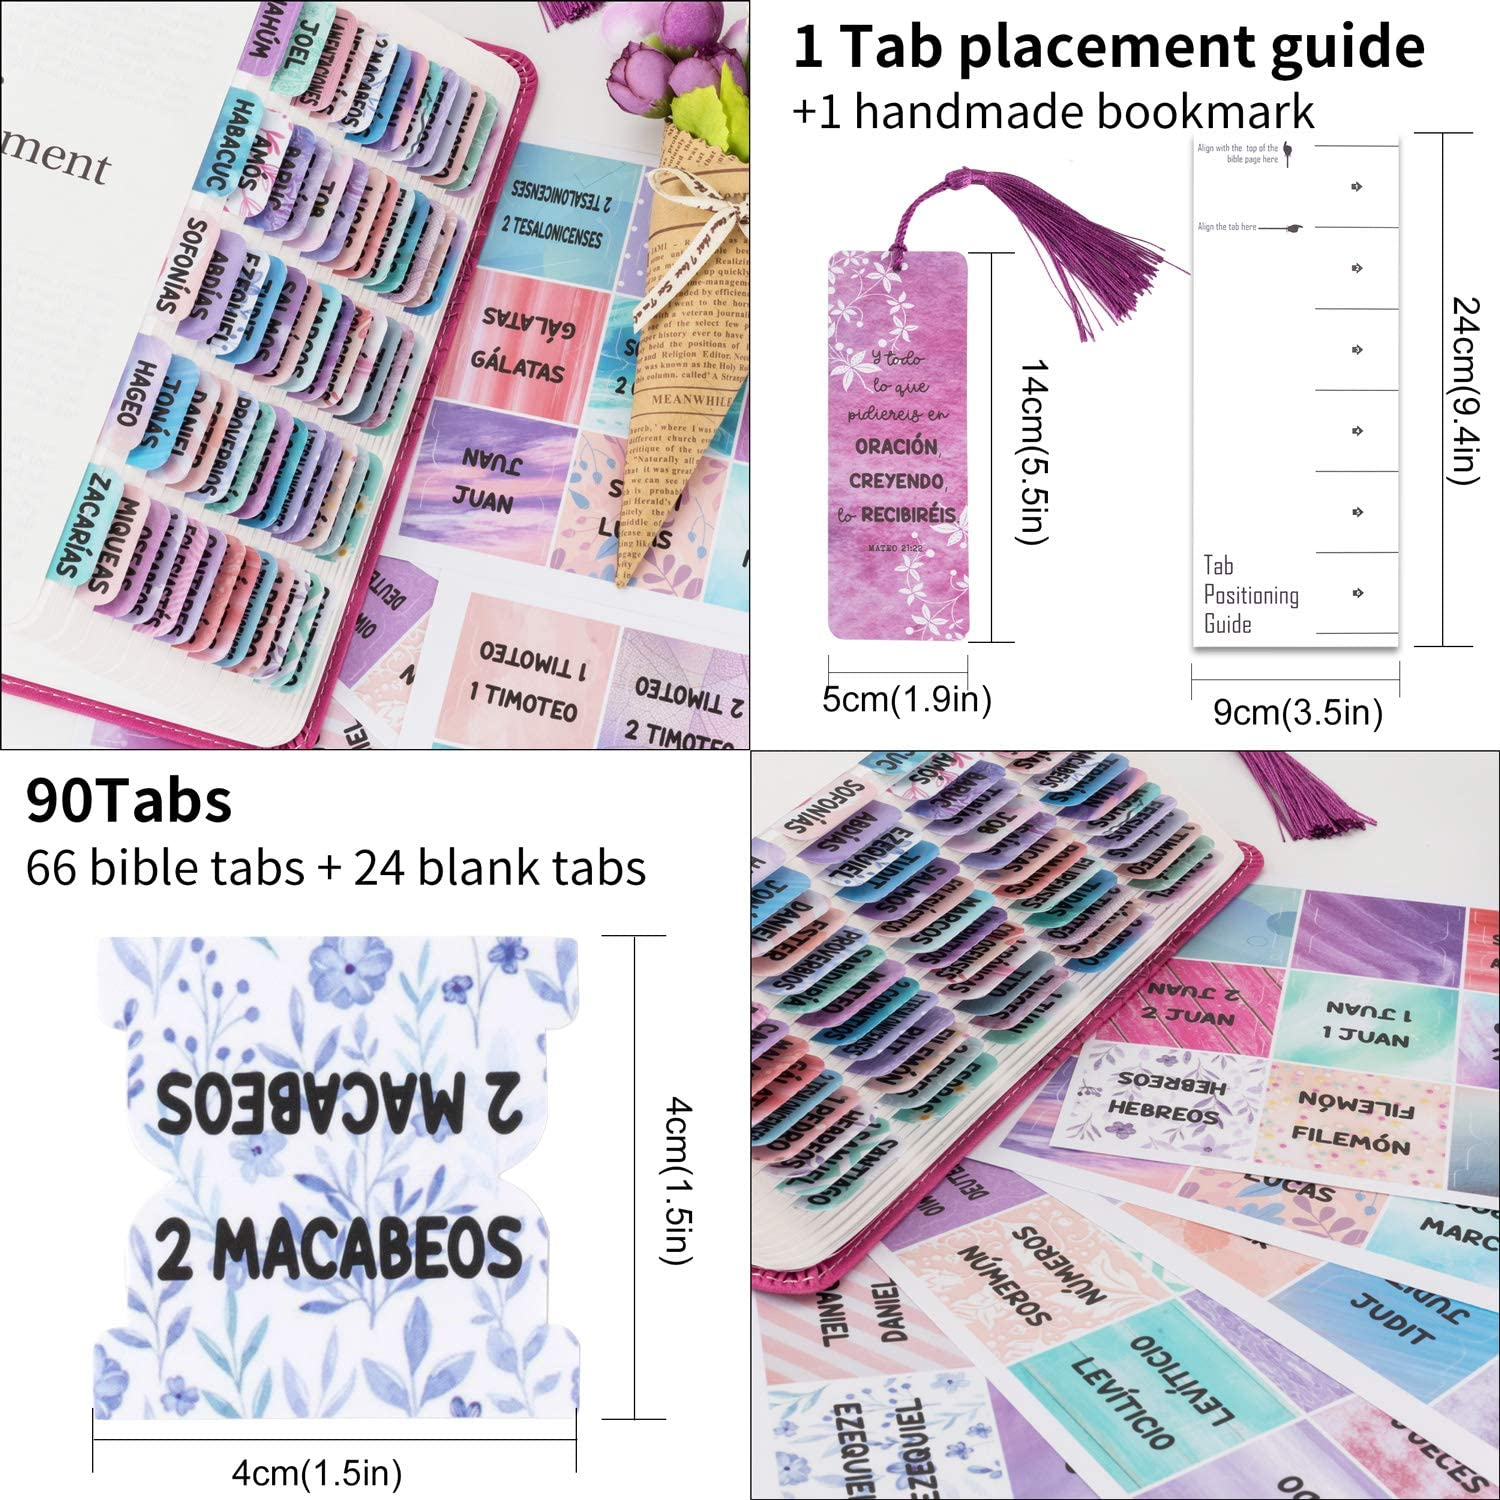 Laminated Purple Catholic Spanish Bible Indexing Tabs for Old and New Testament Large Print 90 tabs in Total Spanish Bible Tabs for Women Easy to Read 73 Bible tabs + 17 Blank tabs